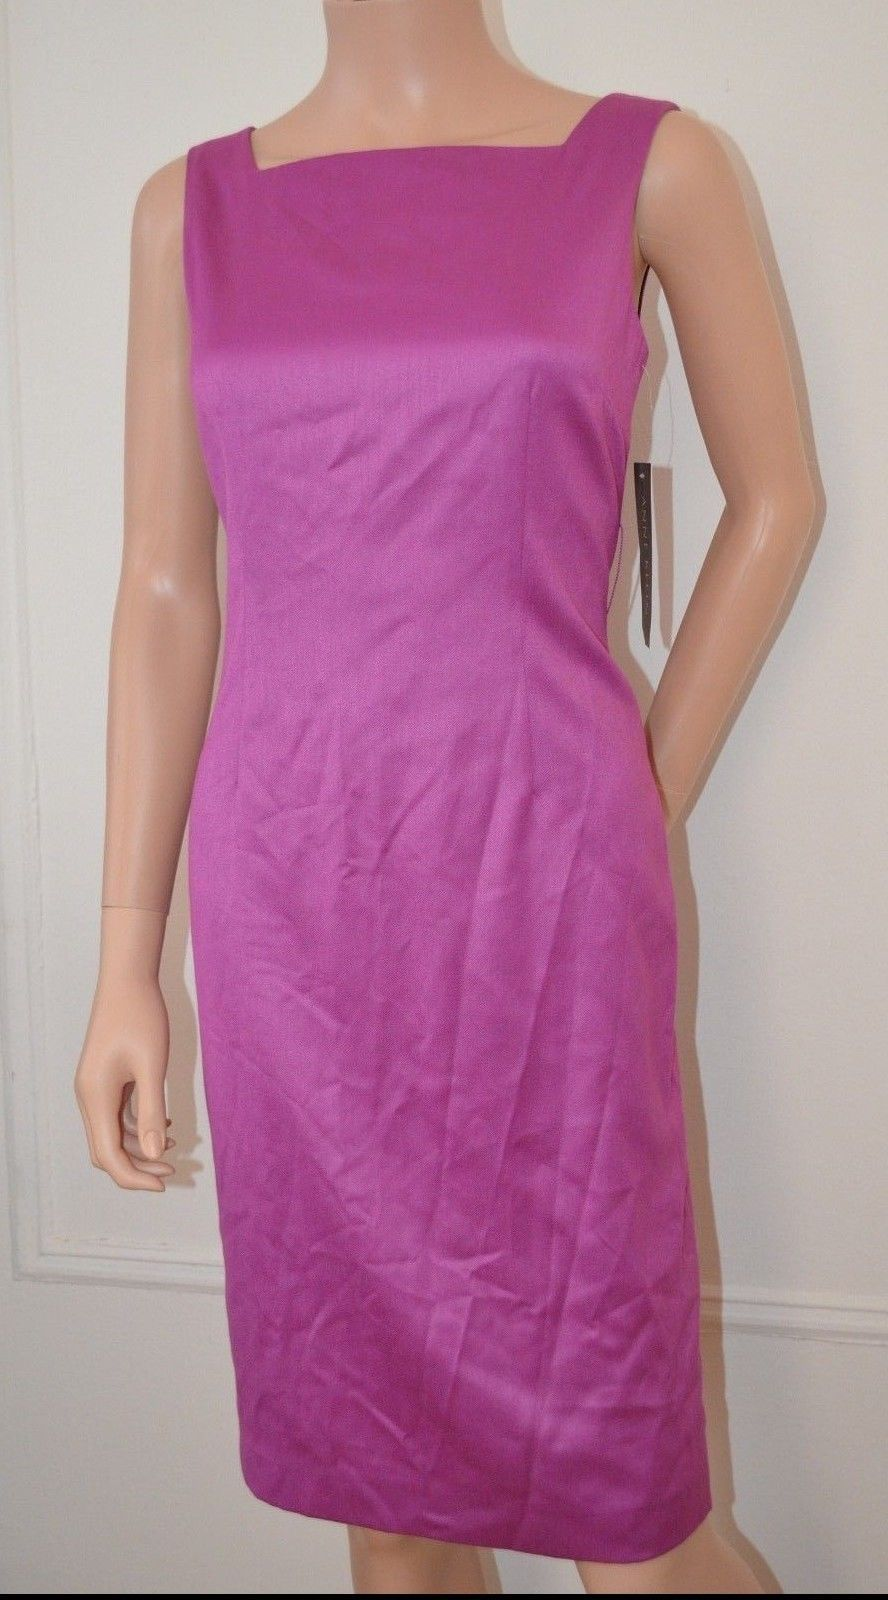 ANNE KLEIN Purple Day Evening Cocktail Party Dress w Jacket sz 4 Small S NEW -